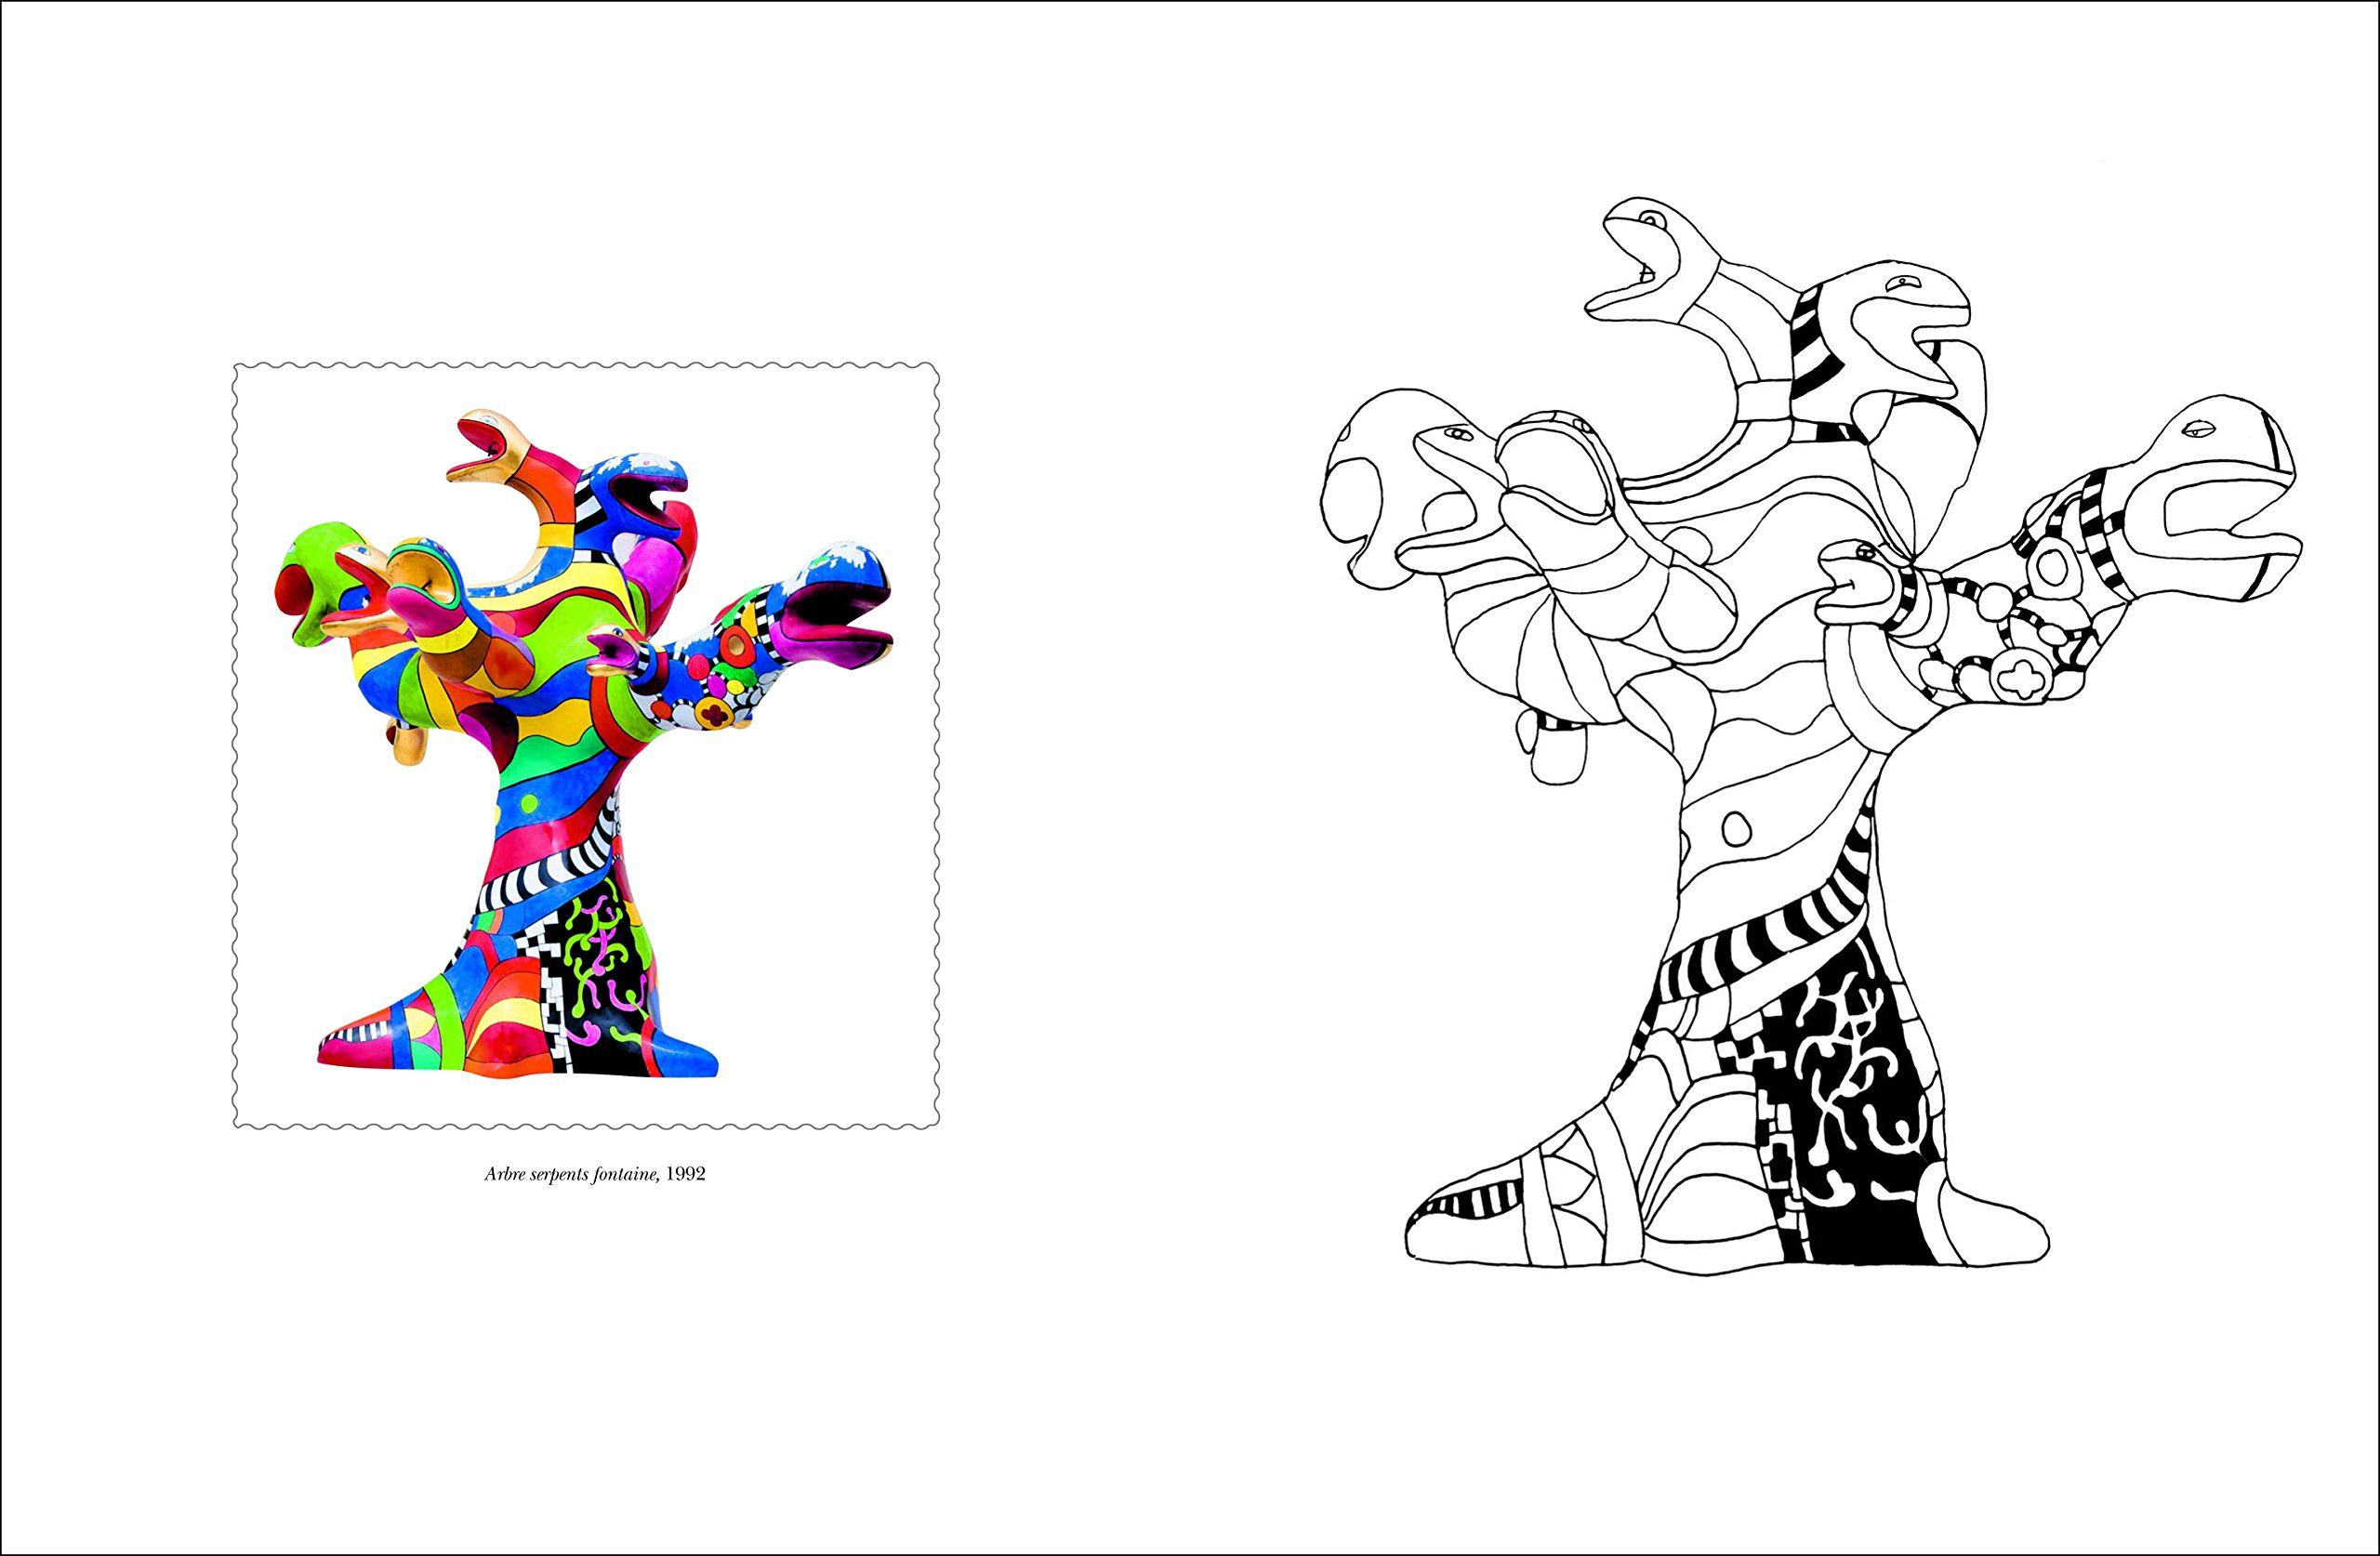 Amazon.fr - Cahier De Coloriages Niki De Saint Phalle dedans Coloriage Amazon